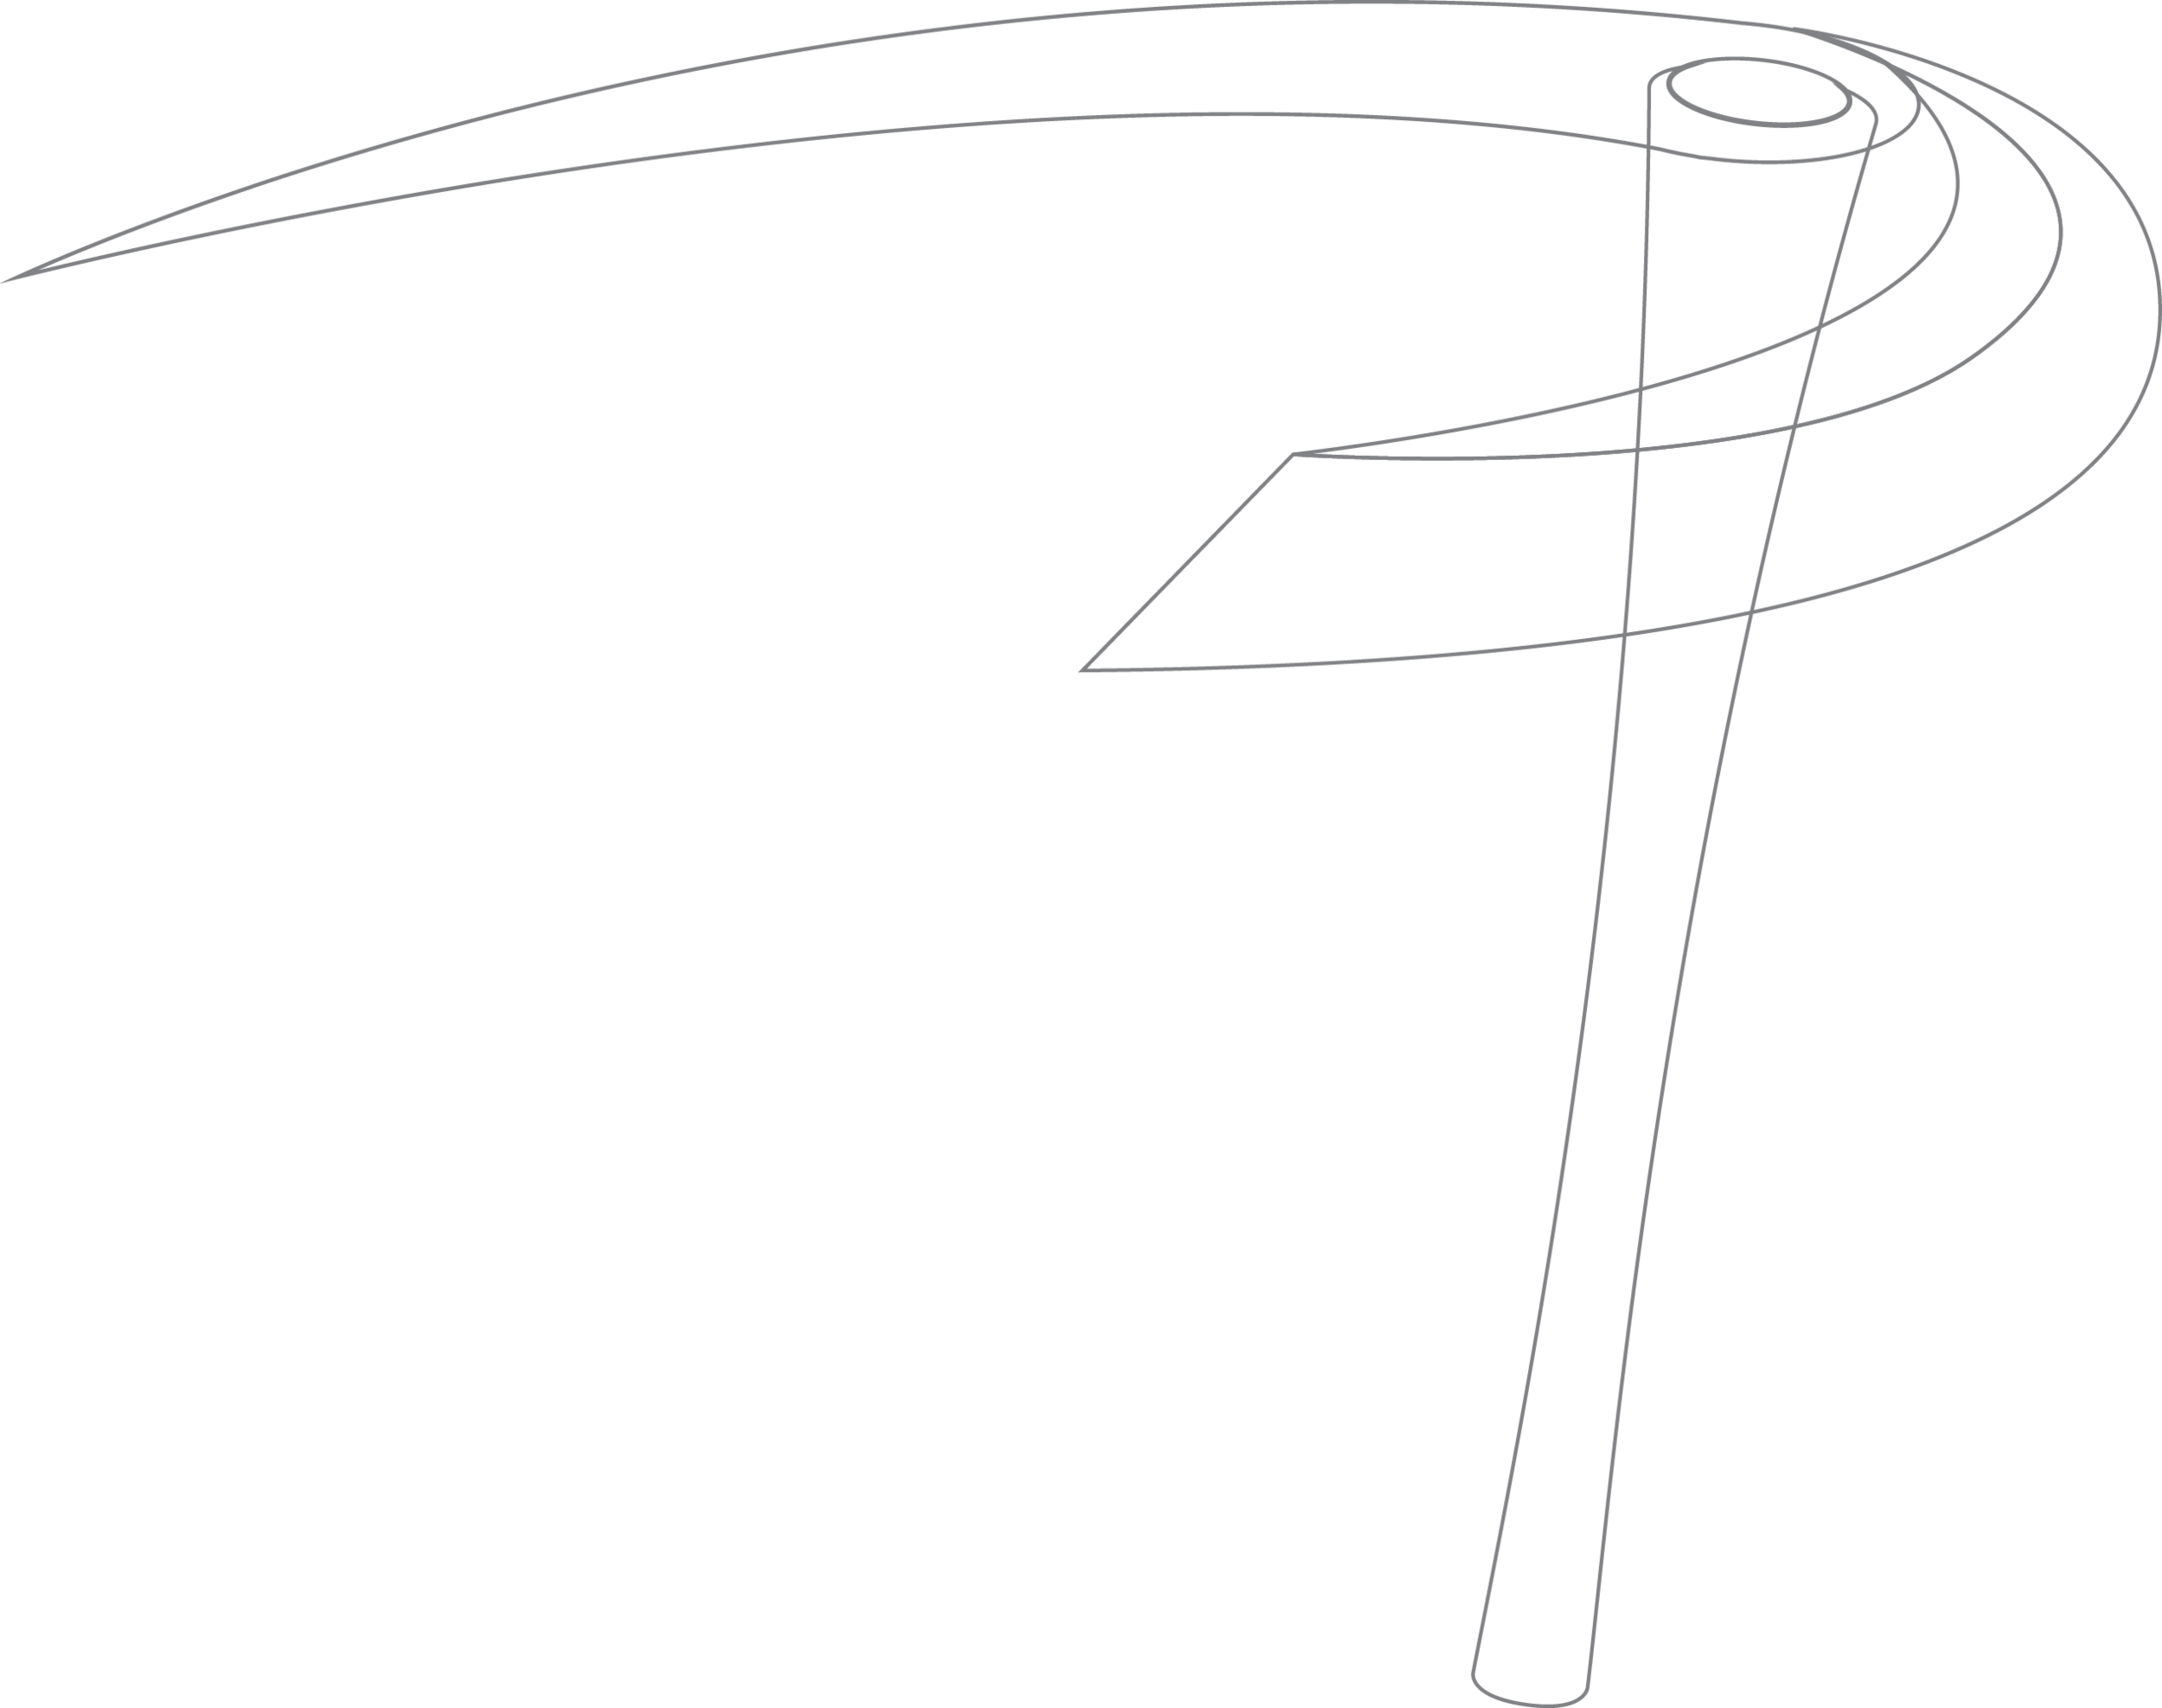 PW_logo_wireframegray.png